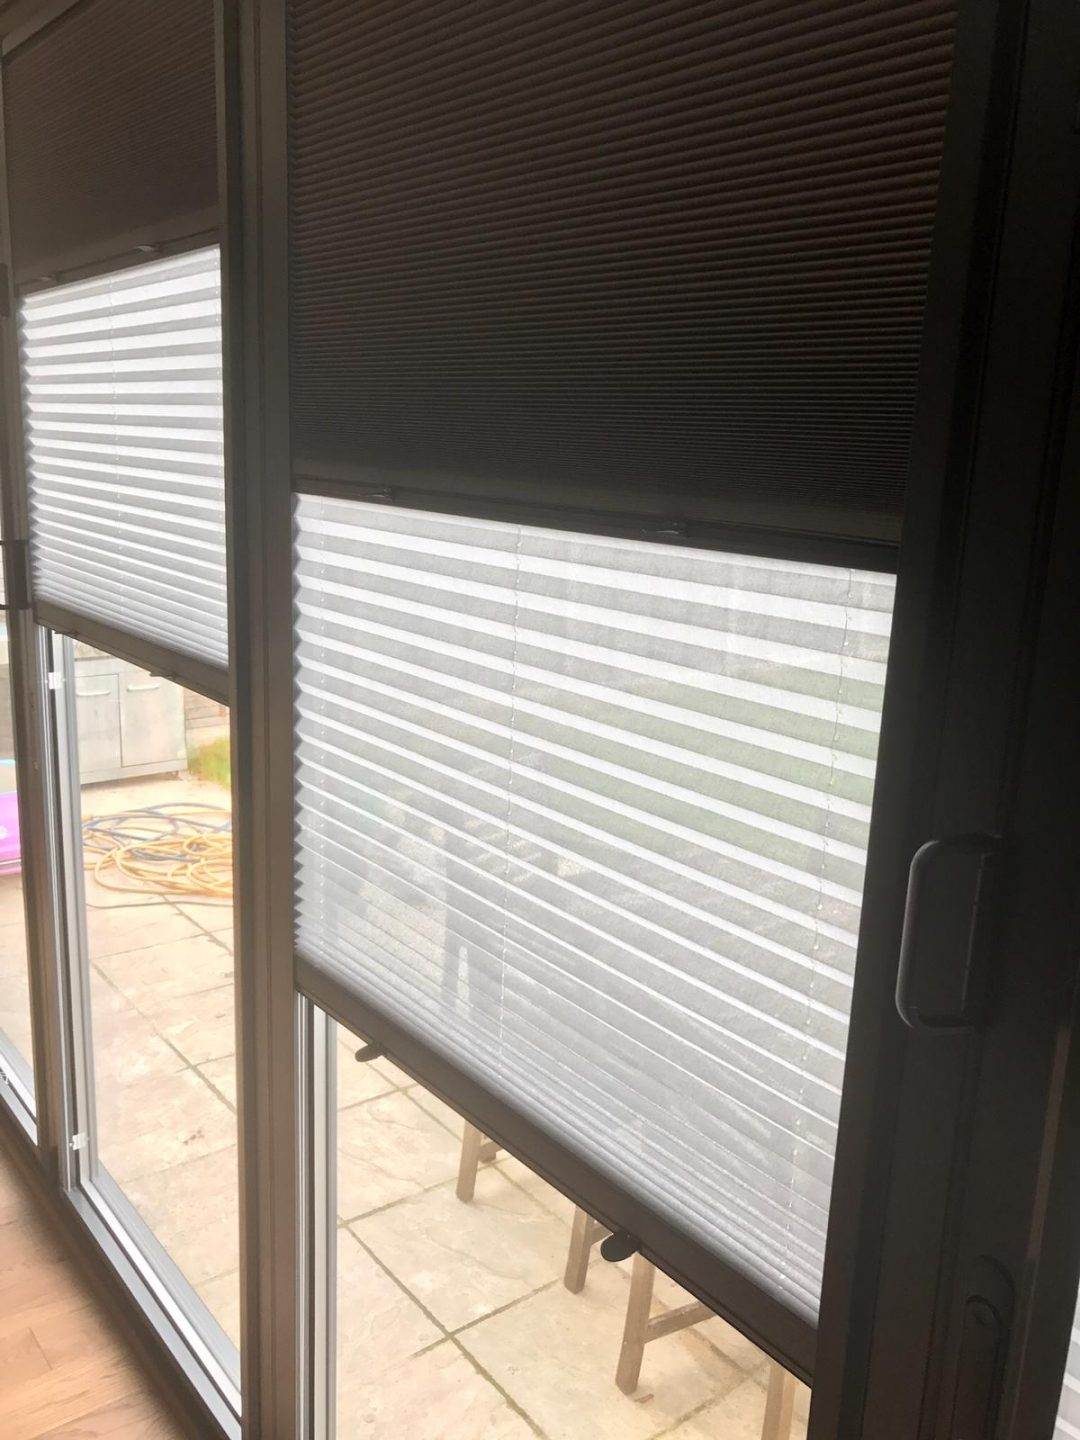 Have you ever wanted to have blinds that take away some of the light?